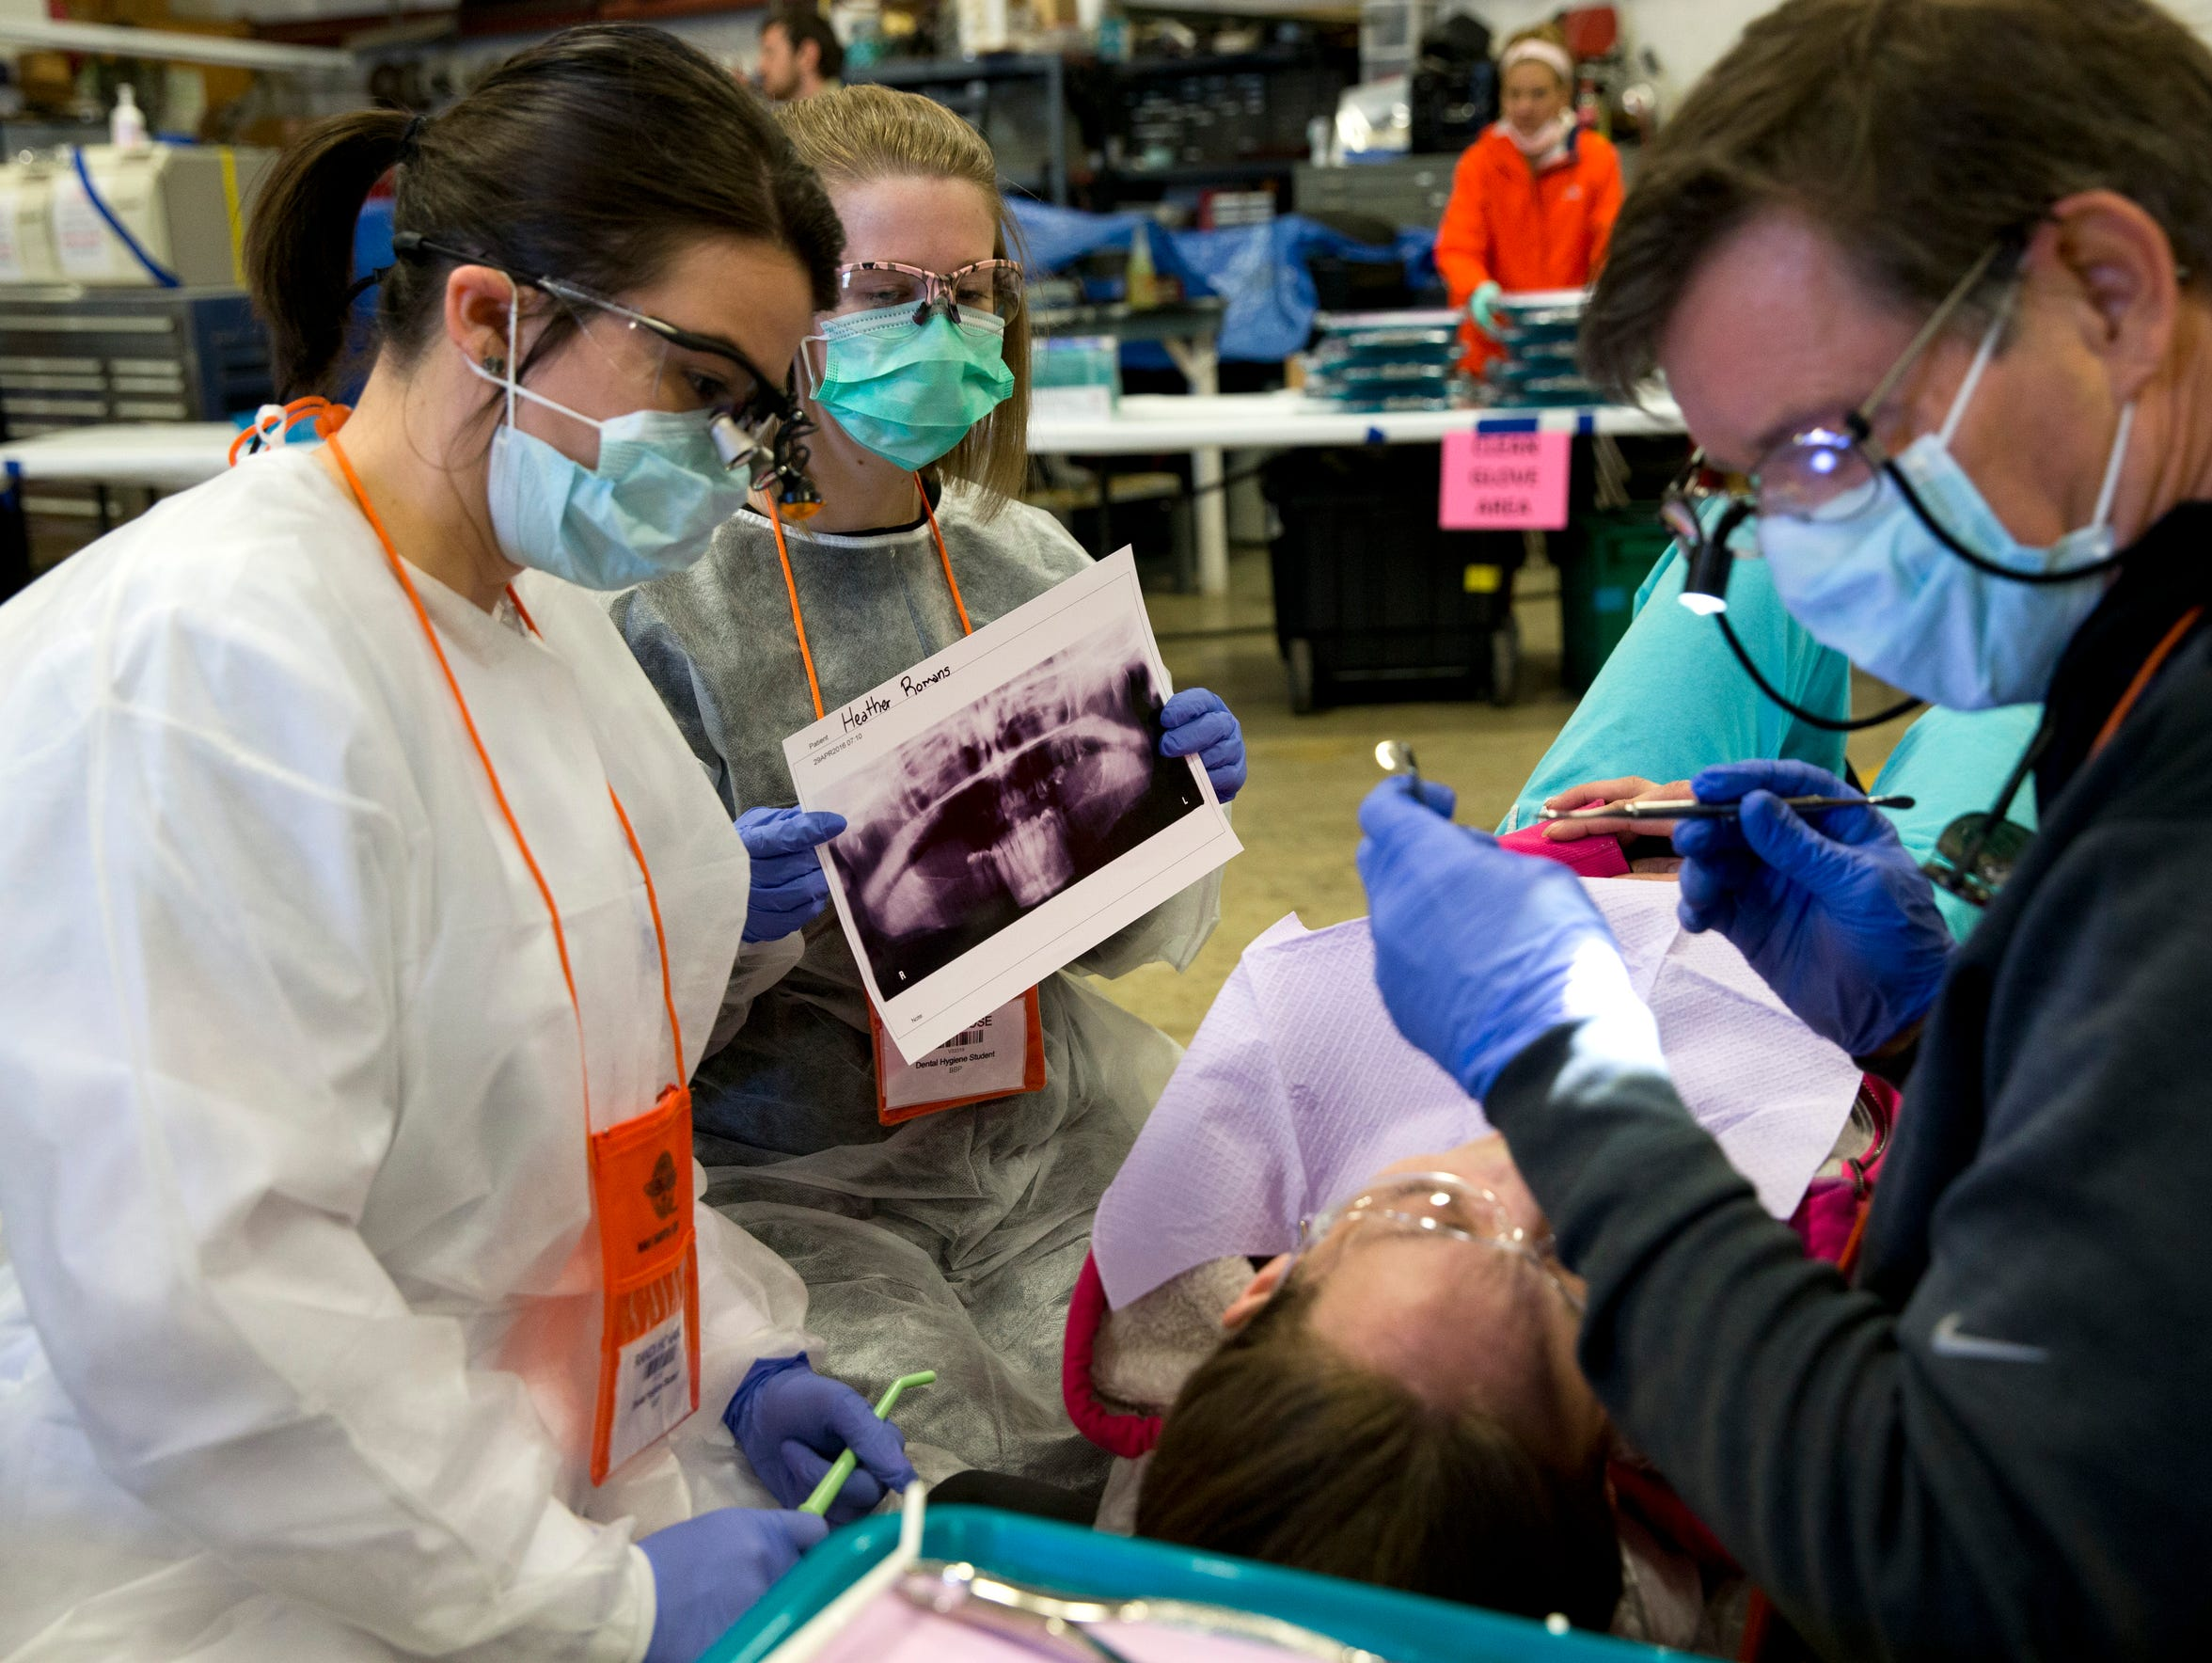 Randi Honaker, left, and Kayla Rose, volunteer dental